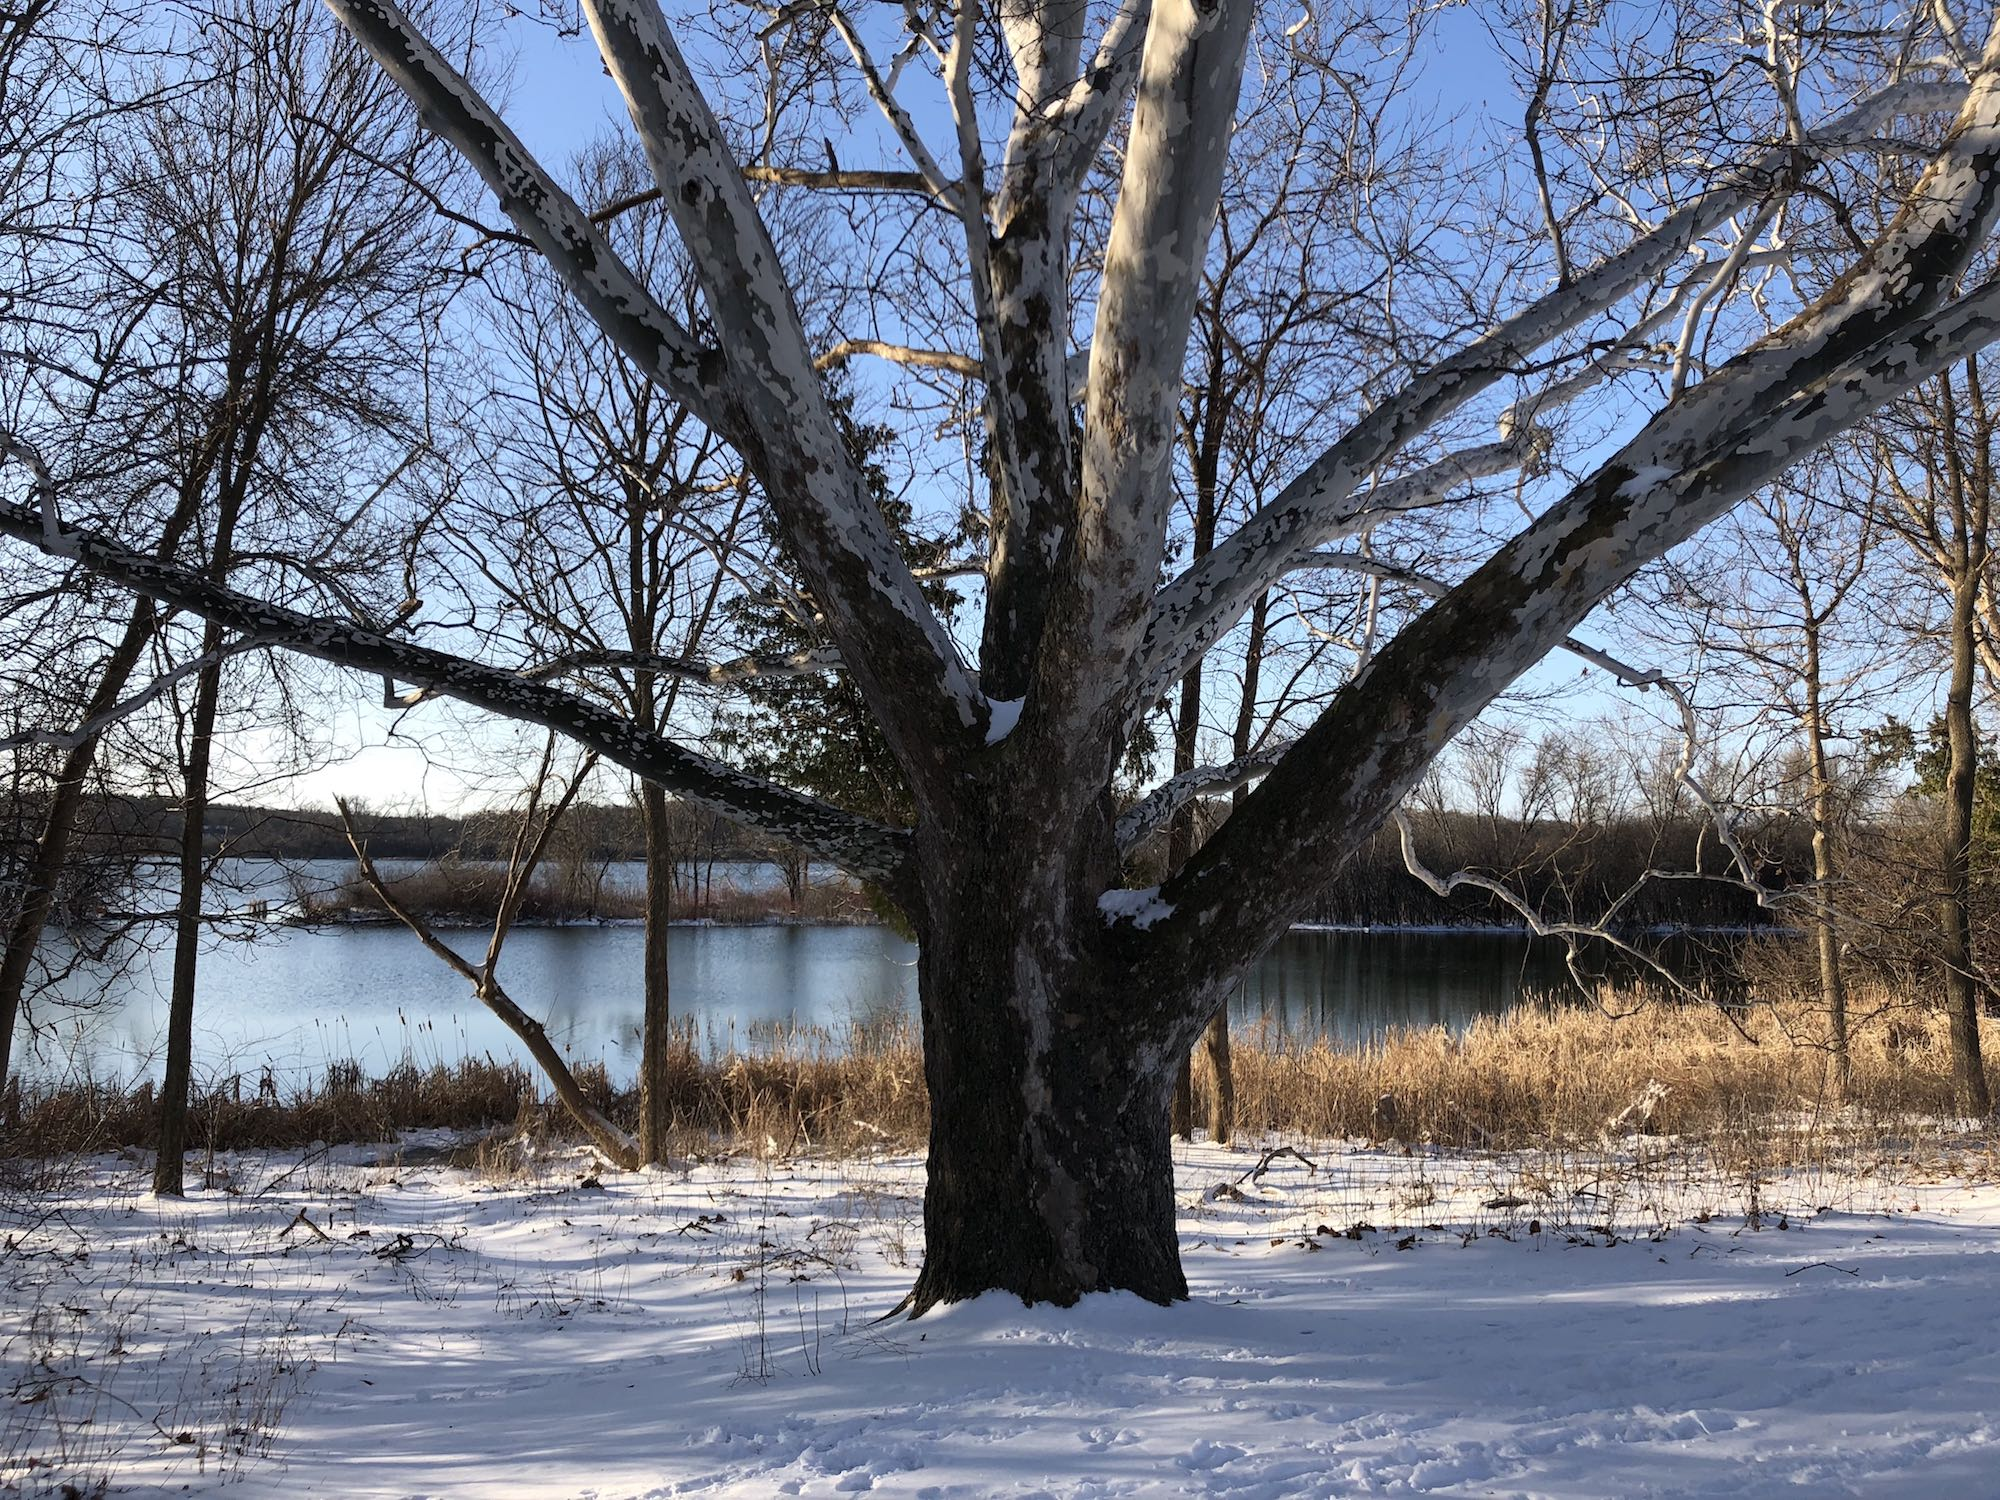 Sycamore tree between Ho-Nee-Um Pond and Arbor Drive on north shore of Lake Wingra on April 17, 2018.